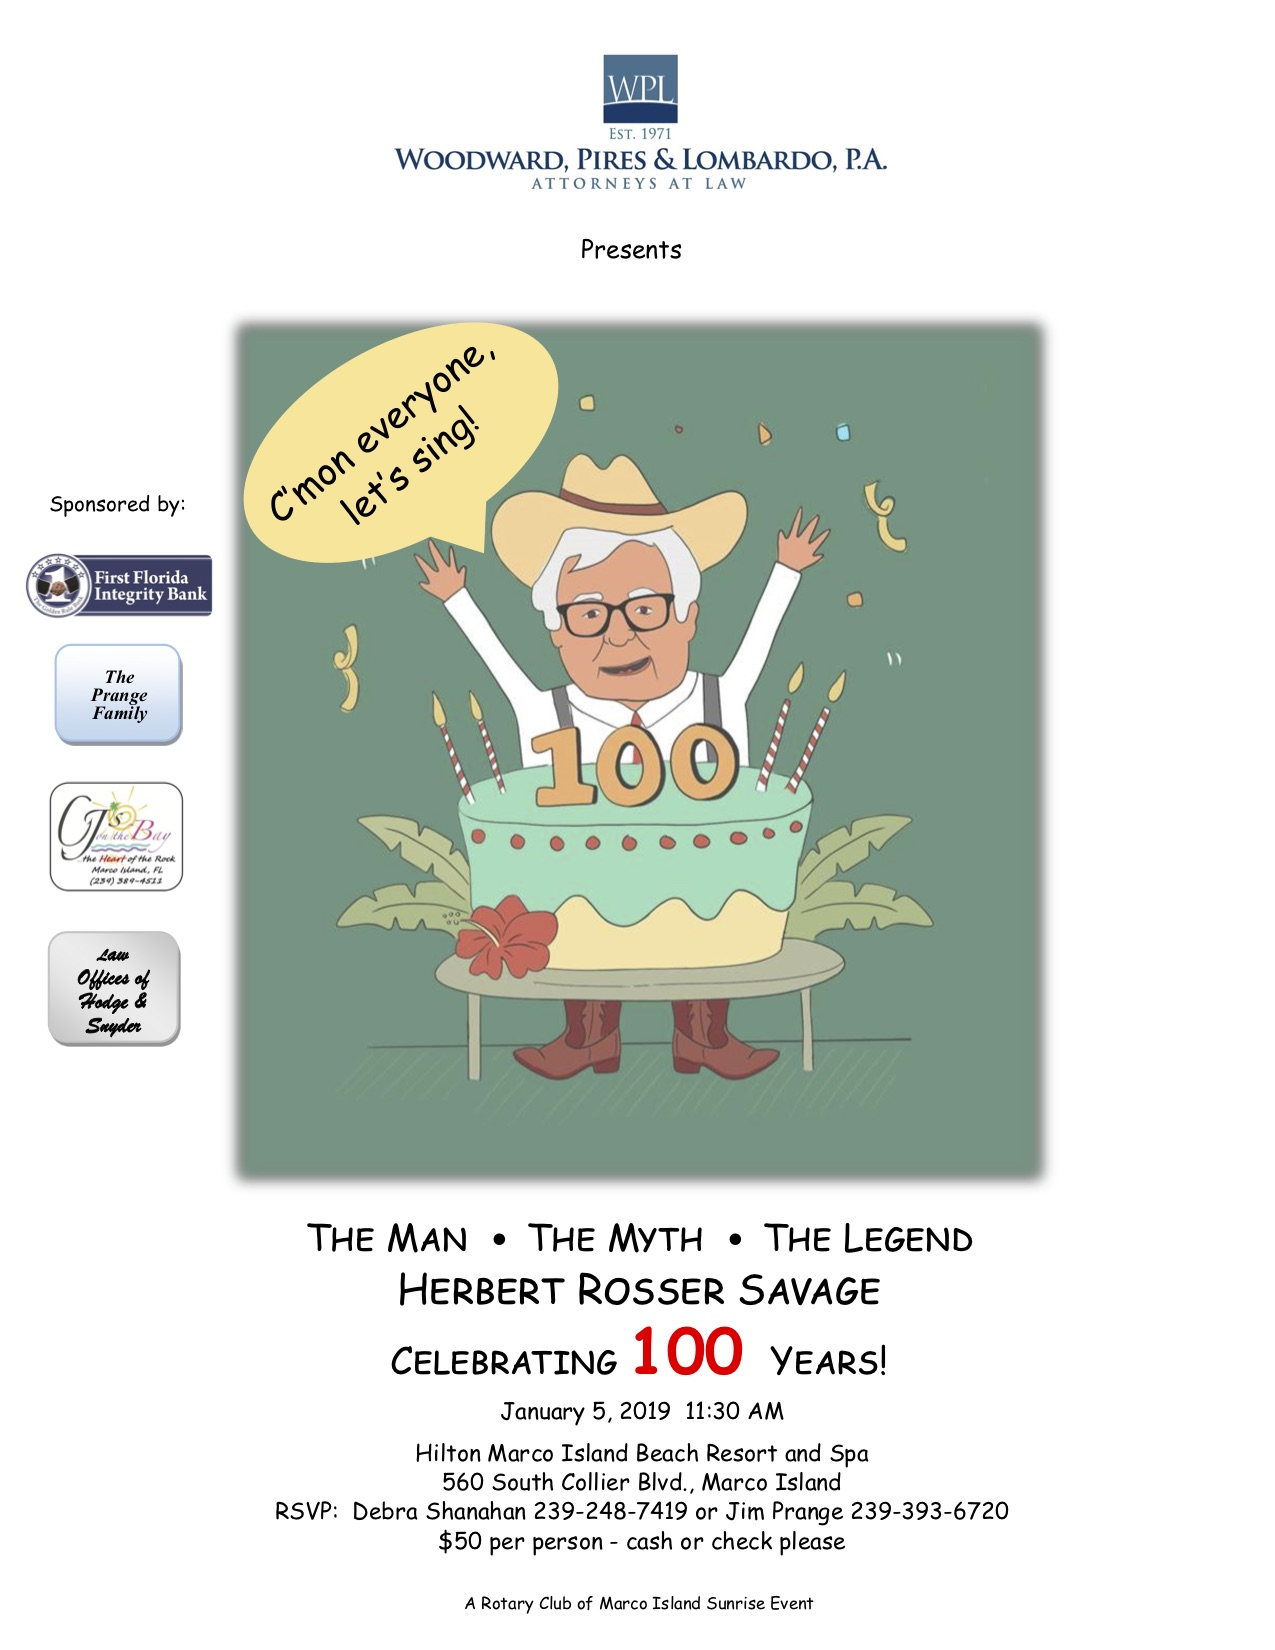 Herb Savage 100th Birthday Celebration